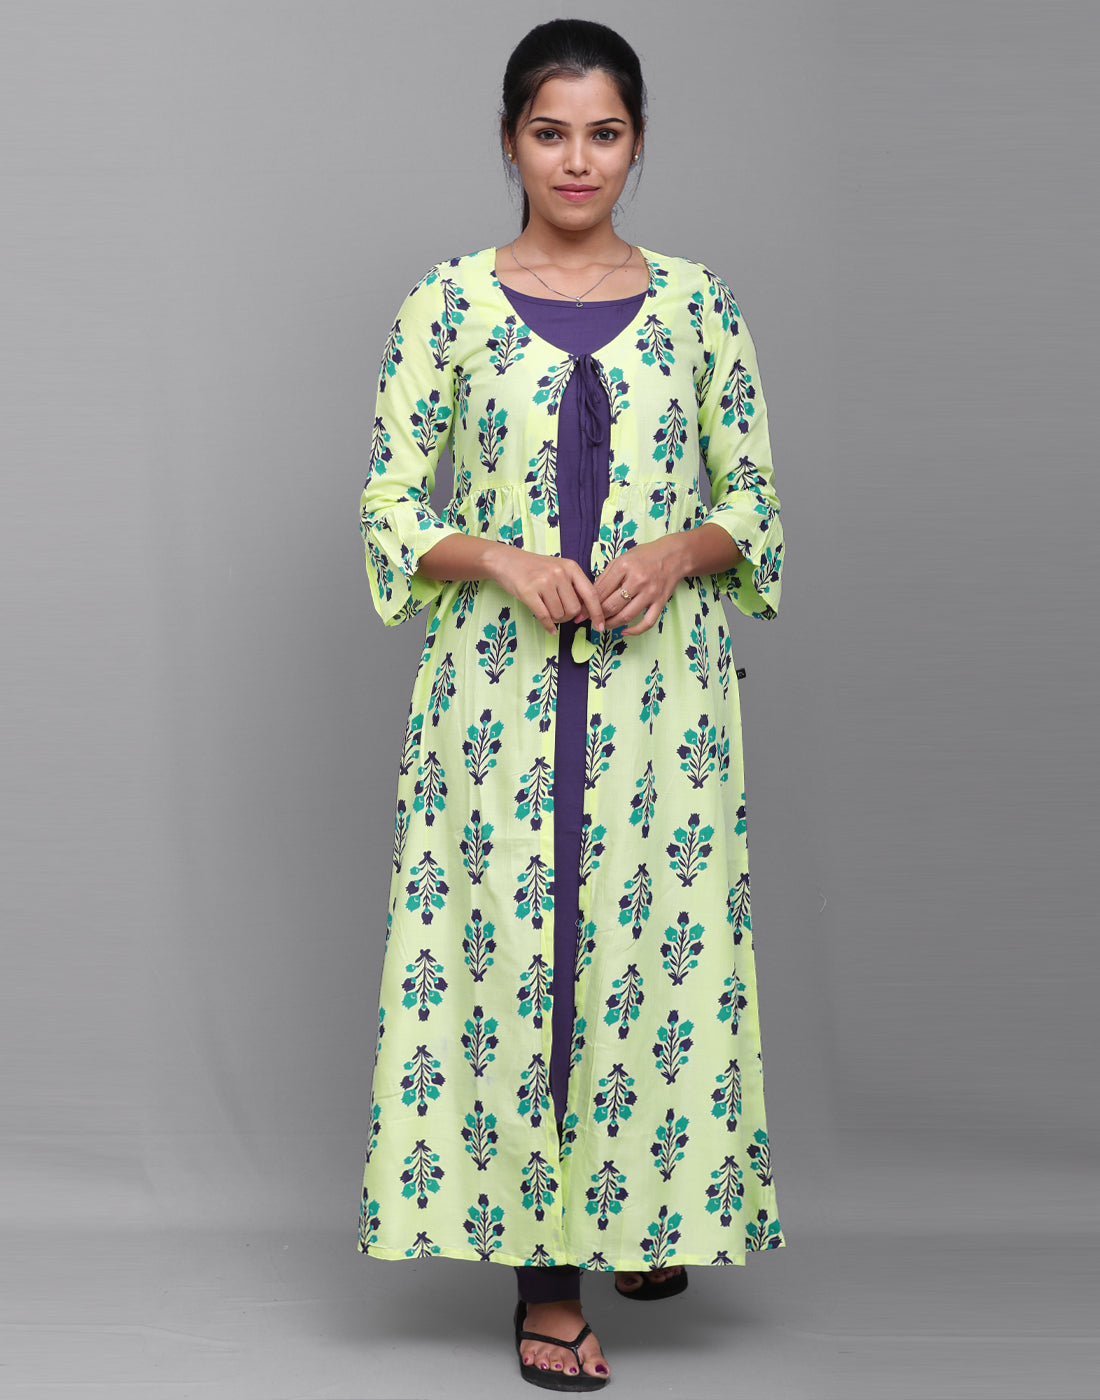 Printed Pastel Yellow n Purple Overcoat 3 Pce Suit